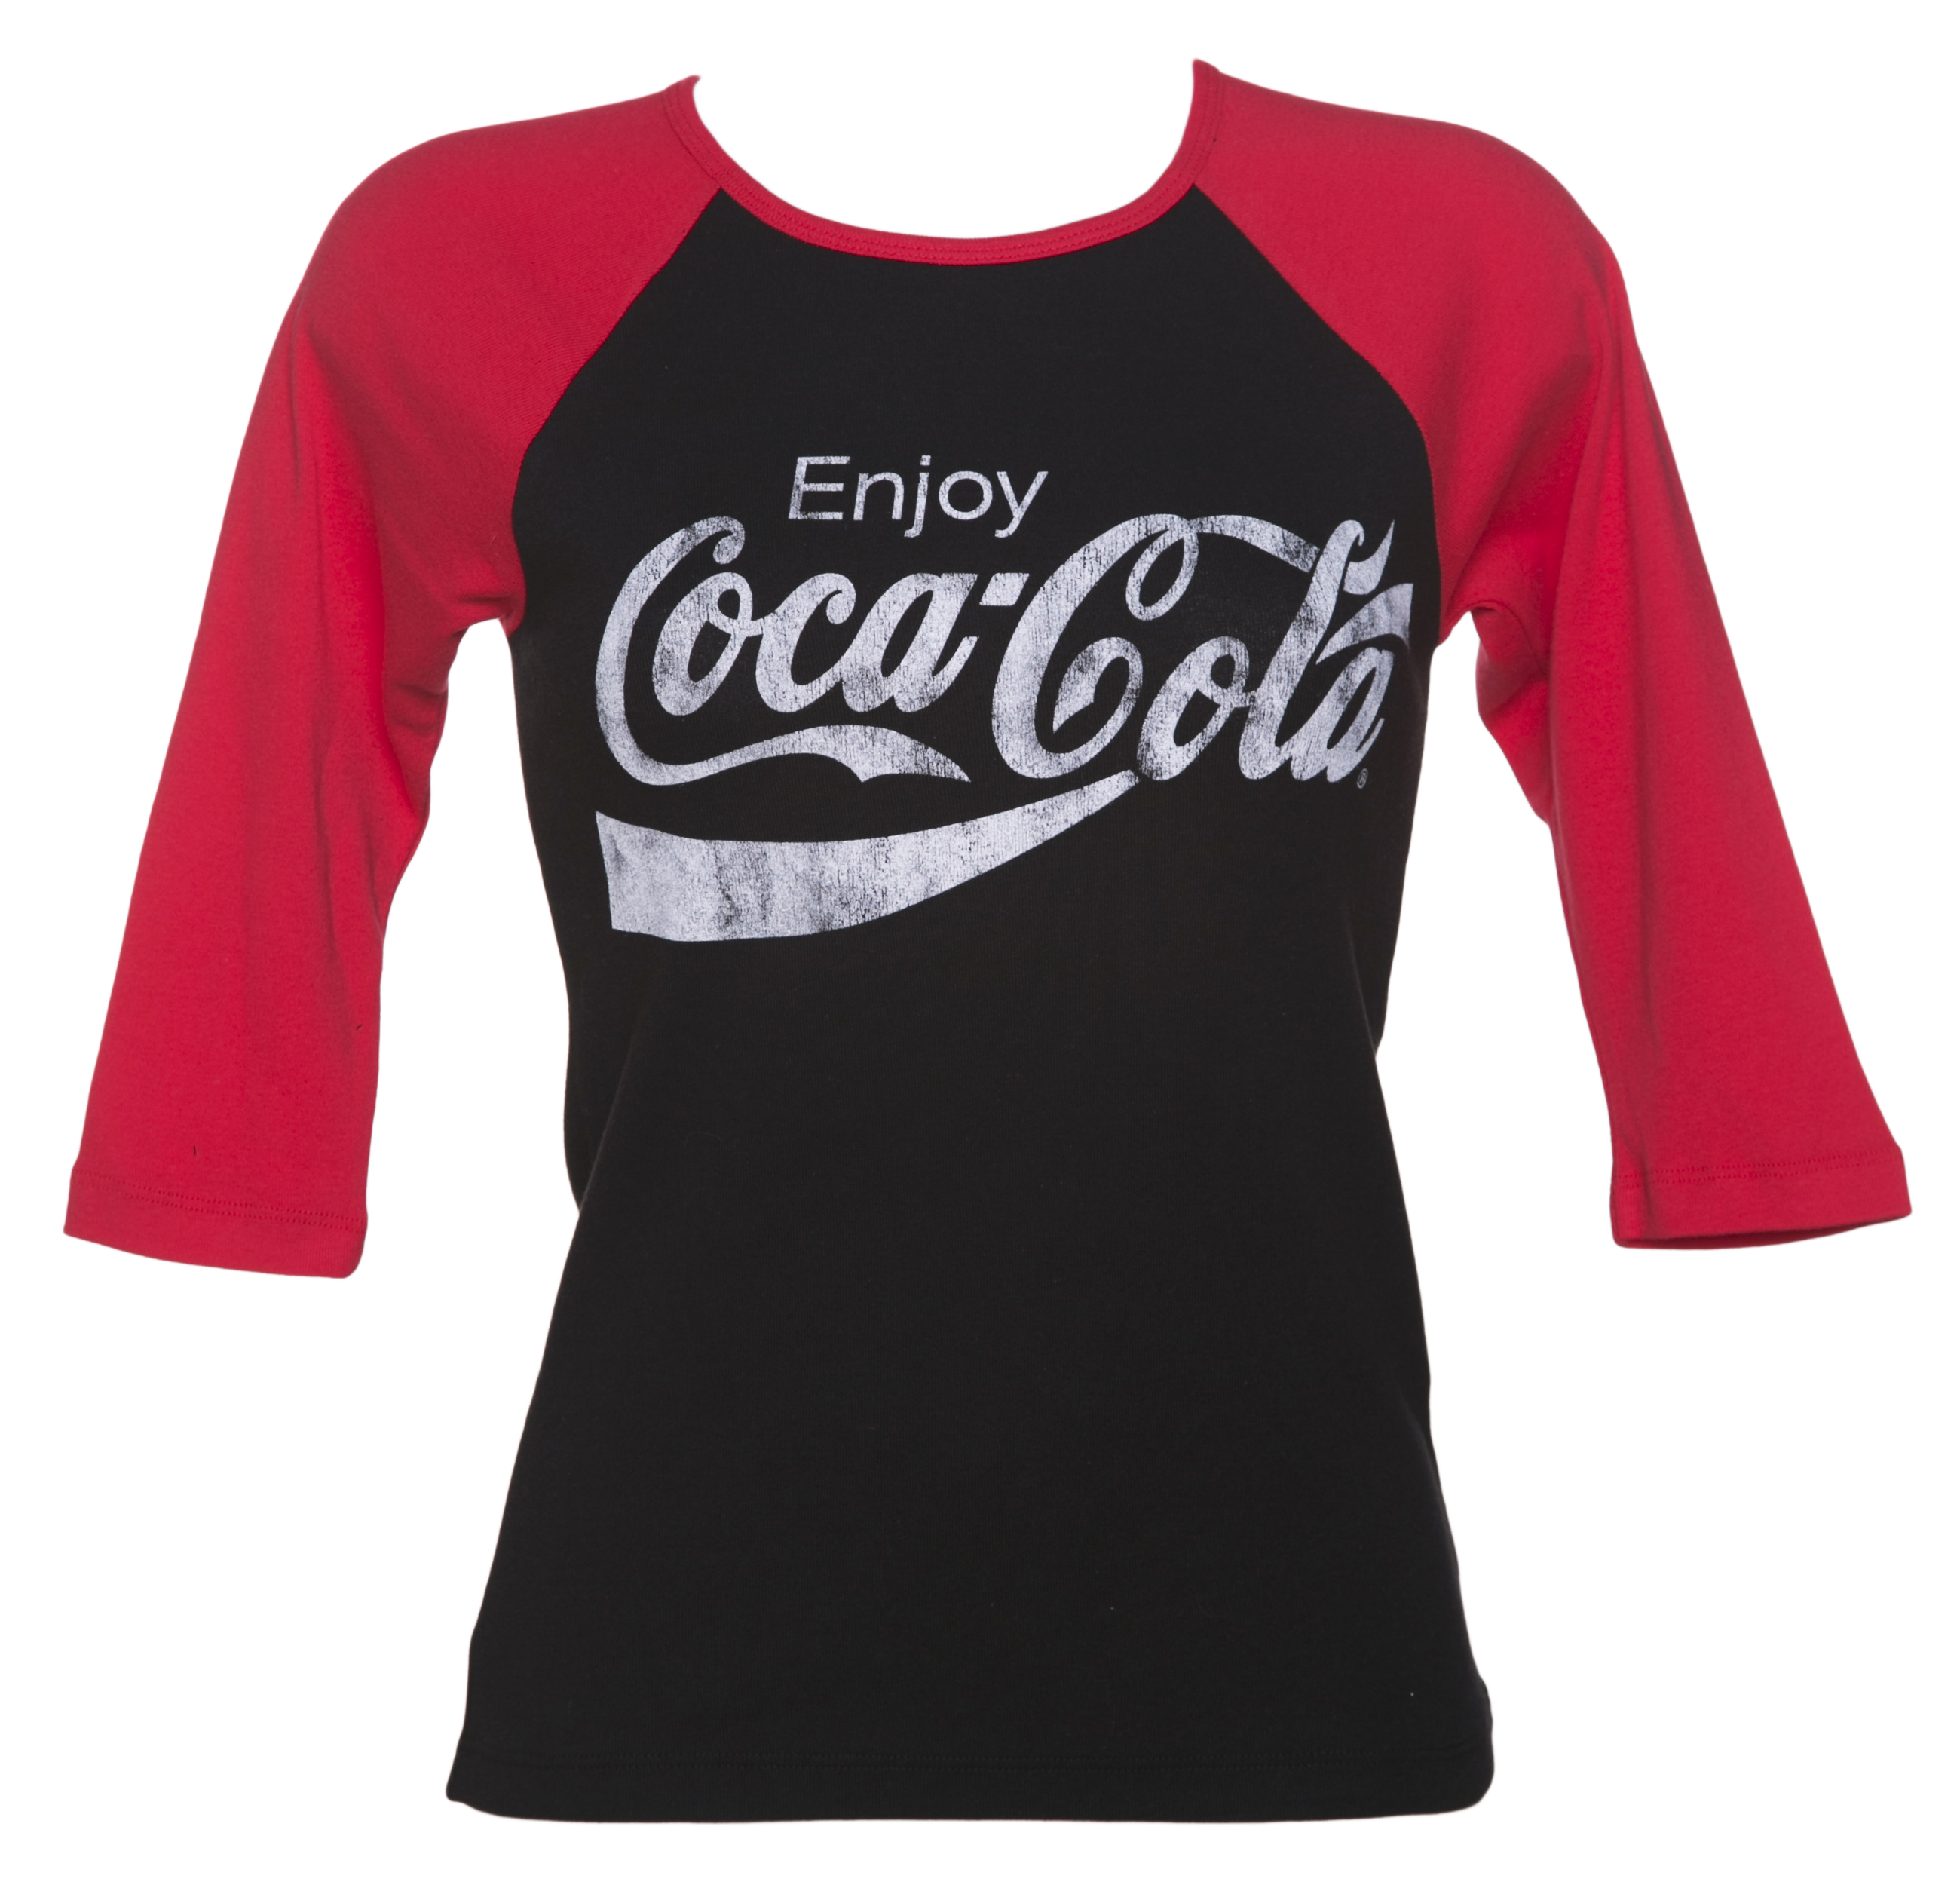 women 39 s enjoy coca cola skinny fit raglan baseball t shirt. Black Bedroom Furniture Sets. Home Design Ideas